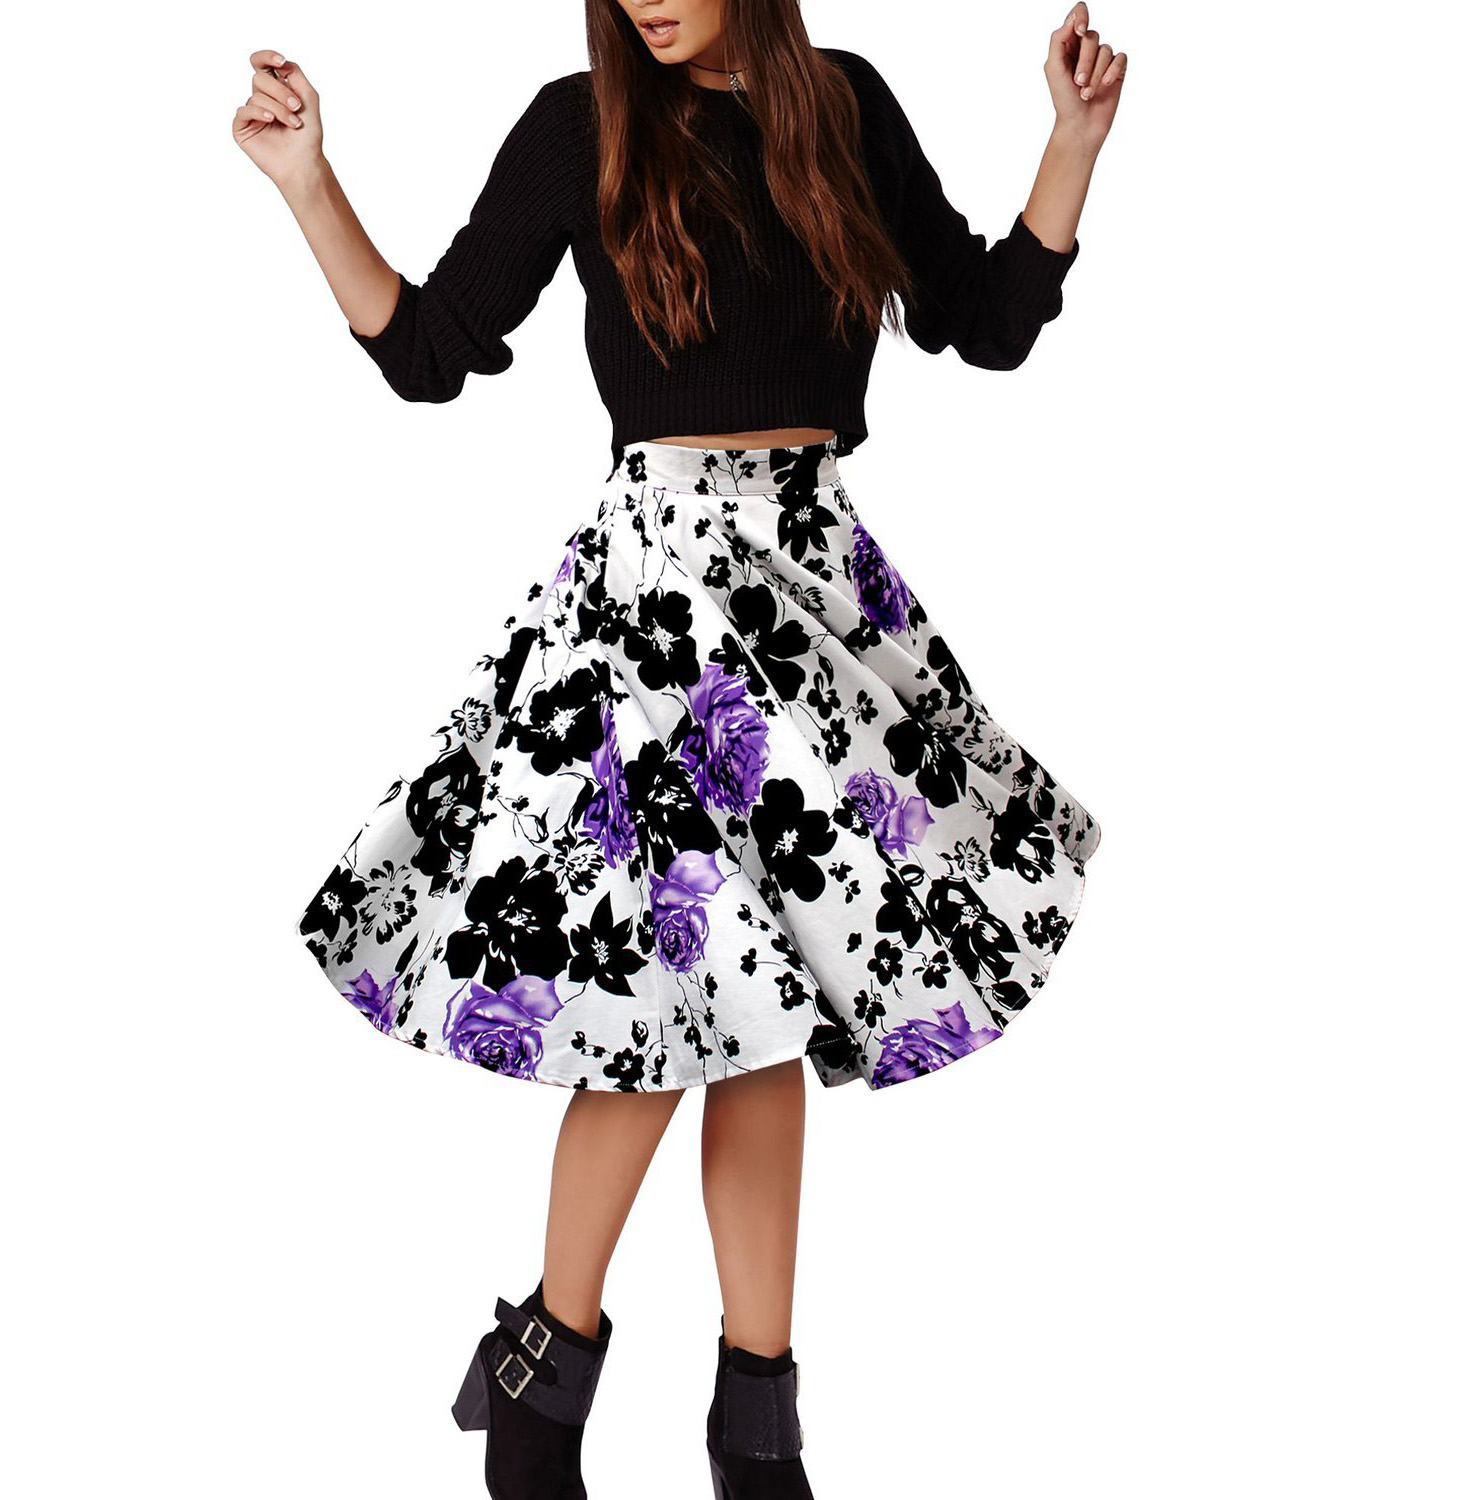 European Women's Fashion Floral Pattern Printed Loose Midi Skirt